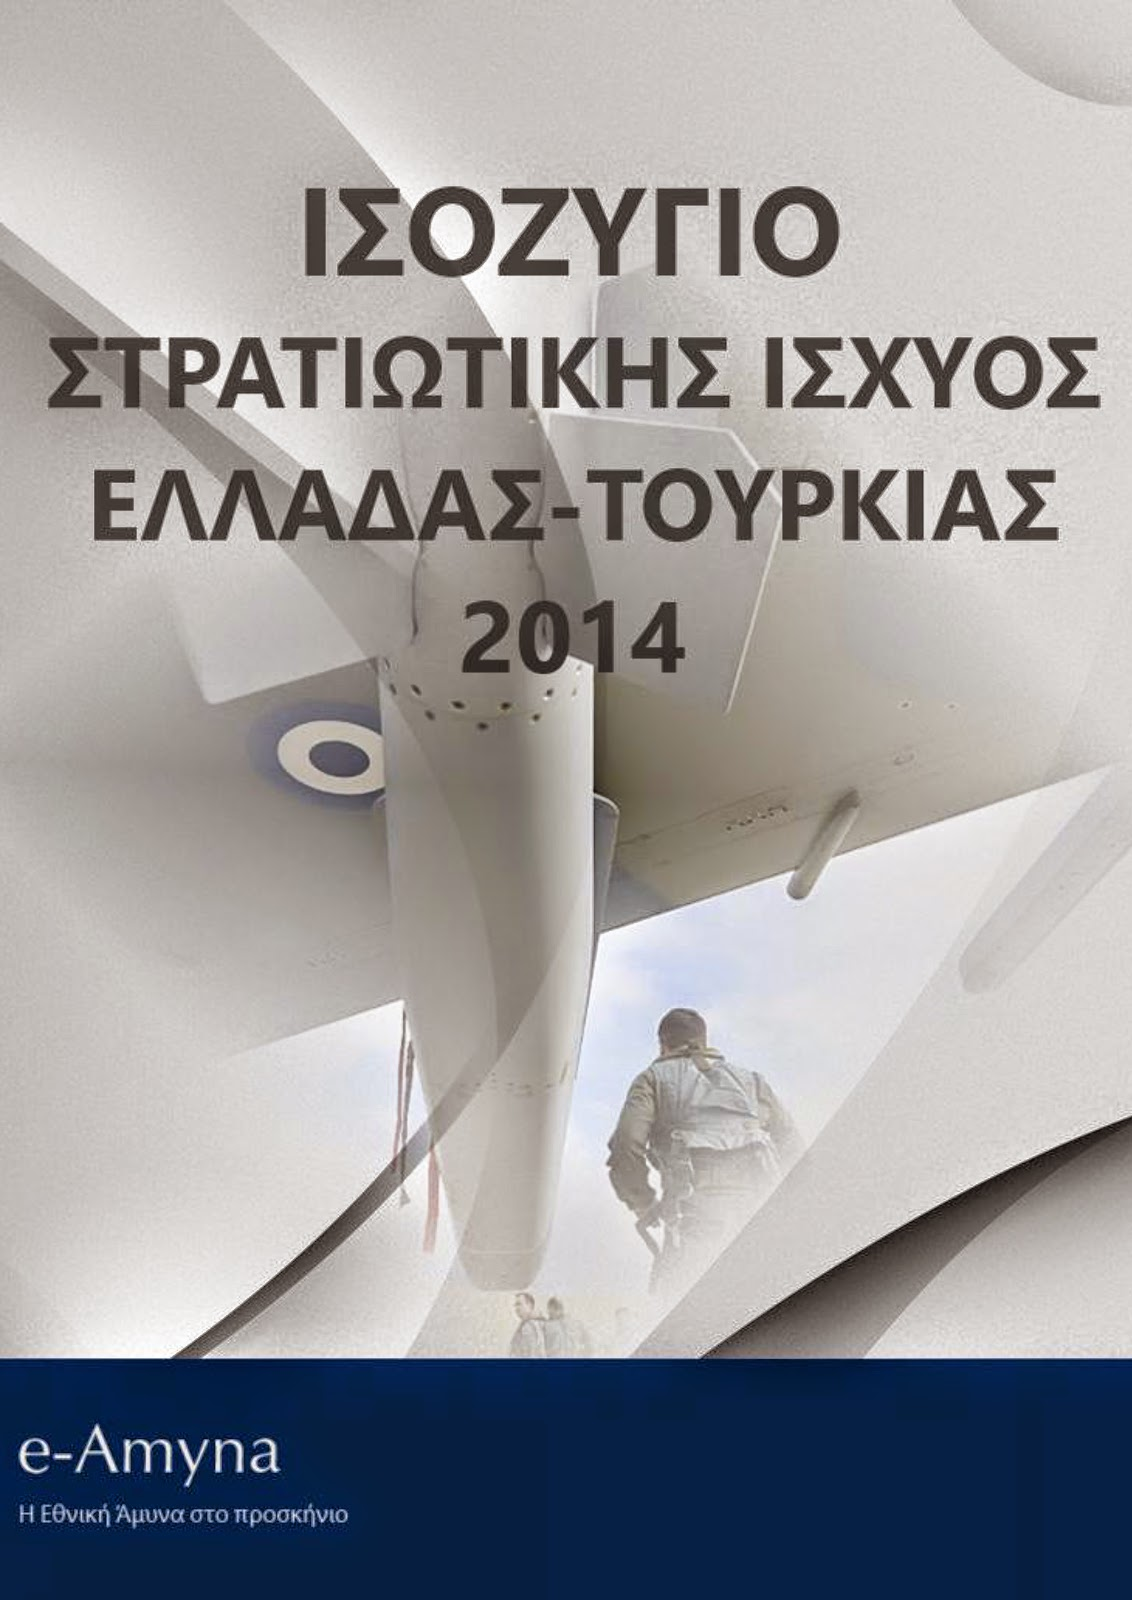 https://eamyna1.files.wordpress.com/2014/09/greece-turkey-military-balance7.pdf